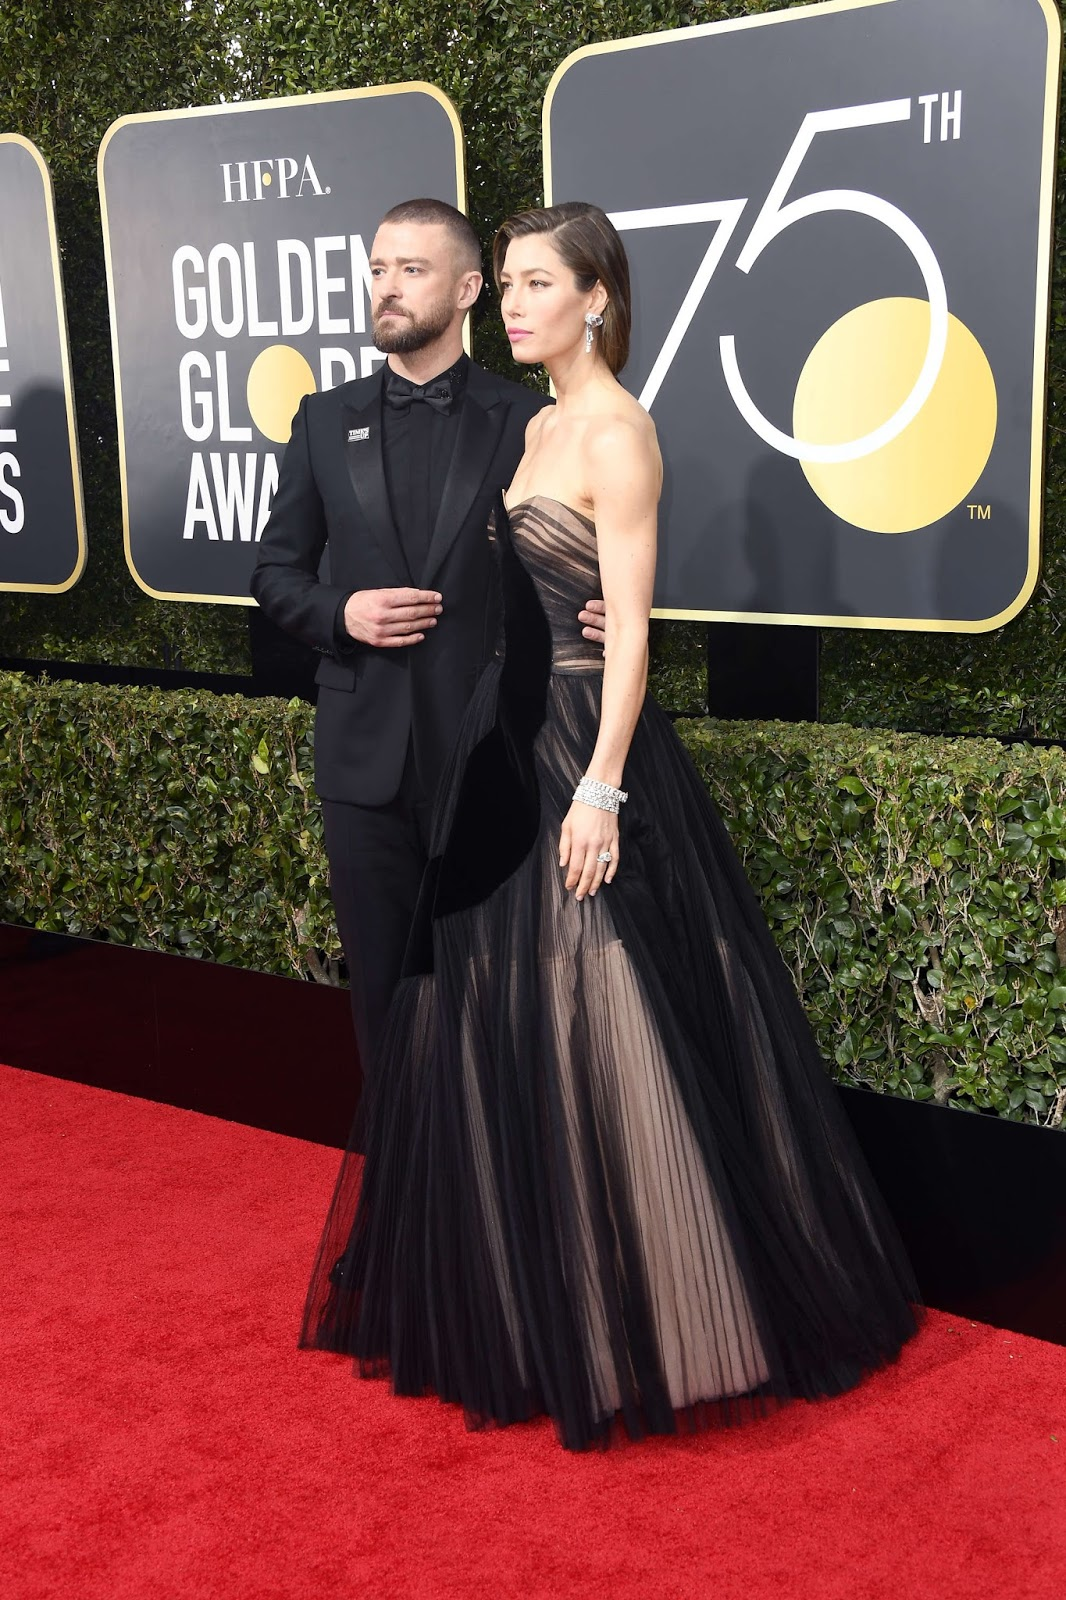 Jessica Biel and Justin Timberlake at Annual Golden Globe Awards